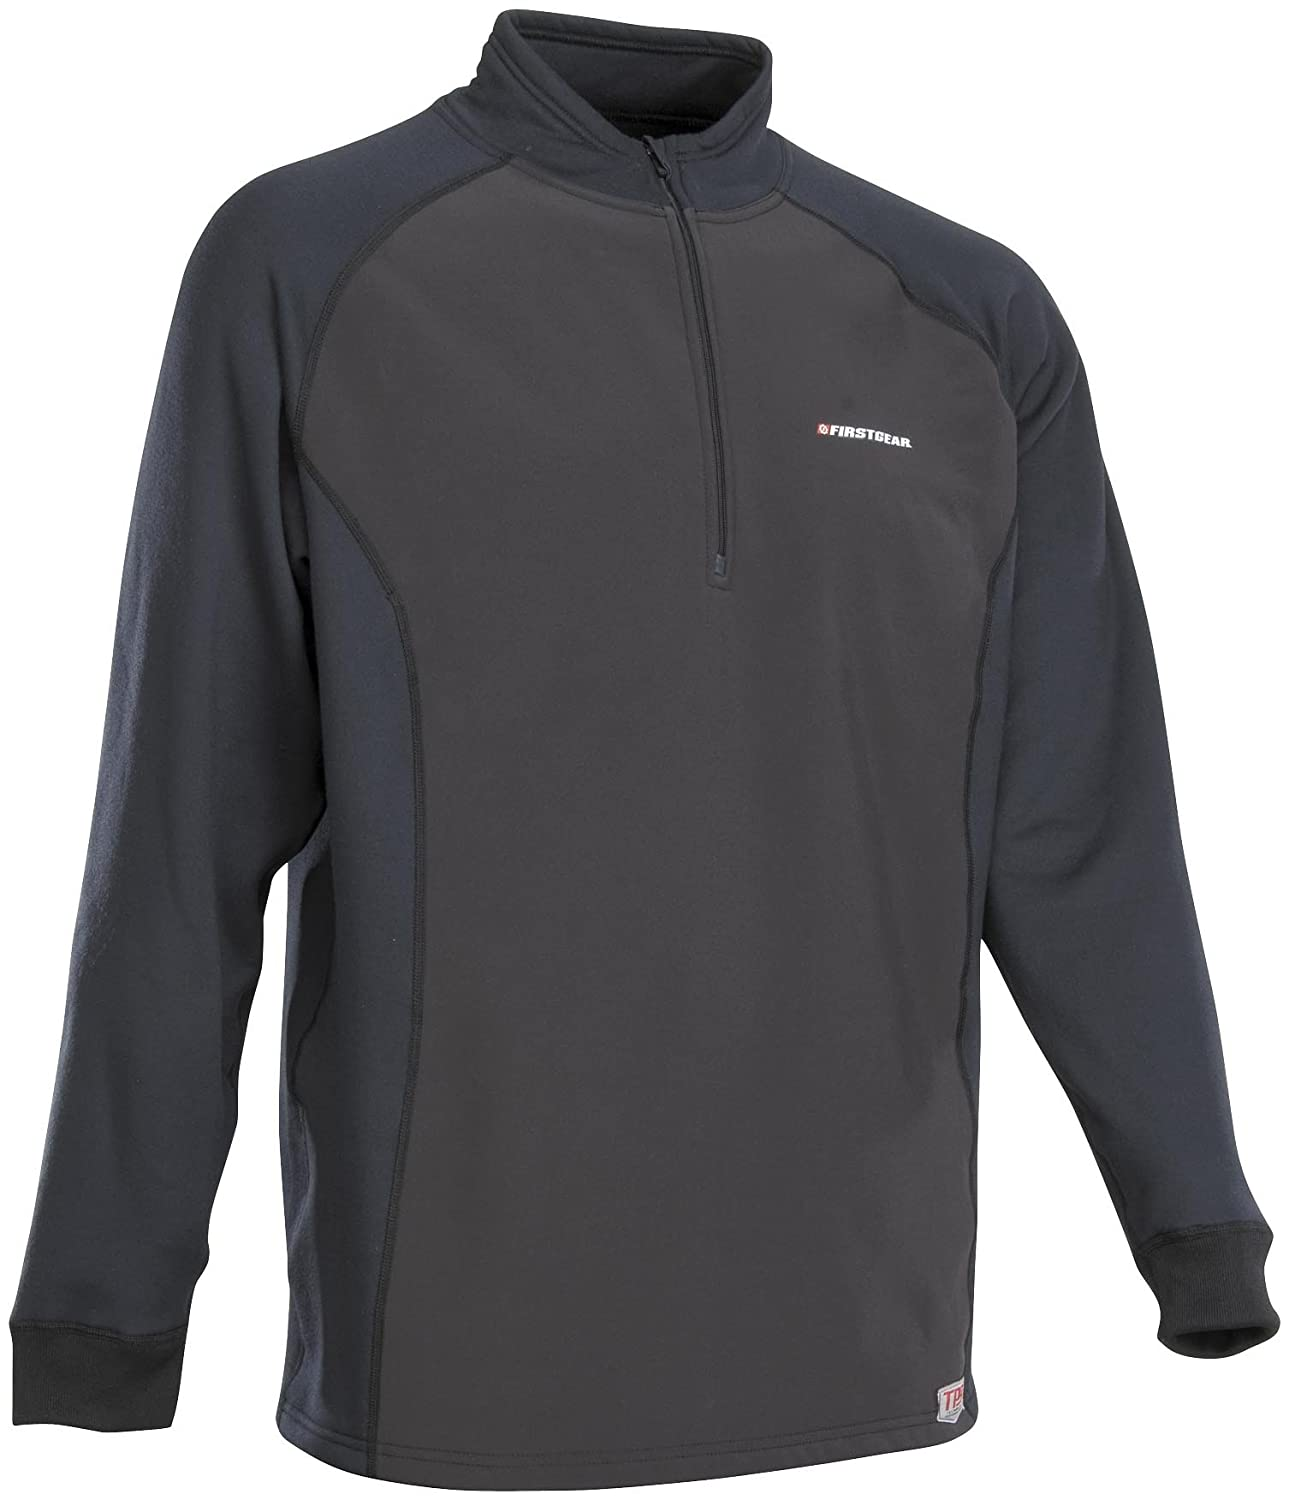 Firstgear Winter Base-Layer Long-Sleeve Black Shirt FTB.0910.01.M004